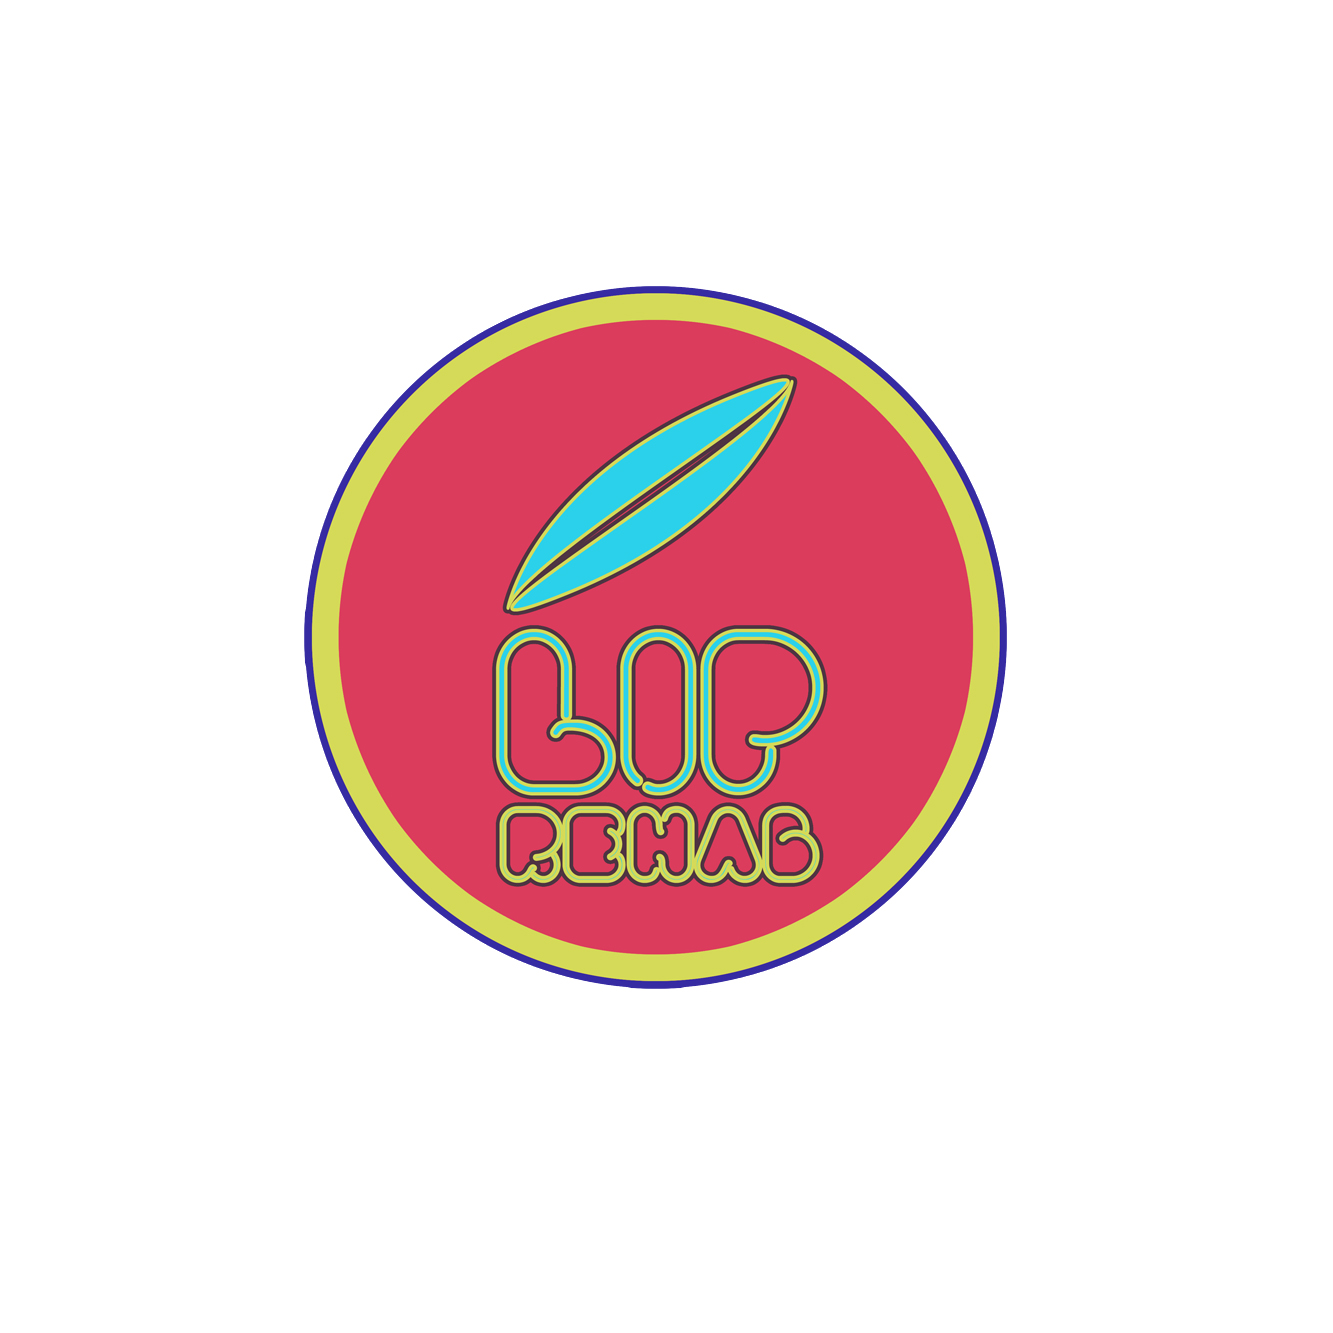 Logo Design by Utkarsh Bhandari - Entry No. 11 in the Logo Design Contest Creative Logo Design for Lip Rehab.